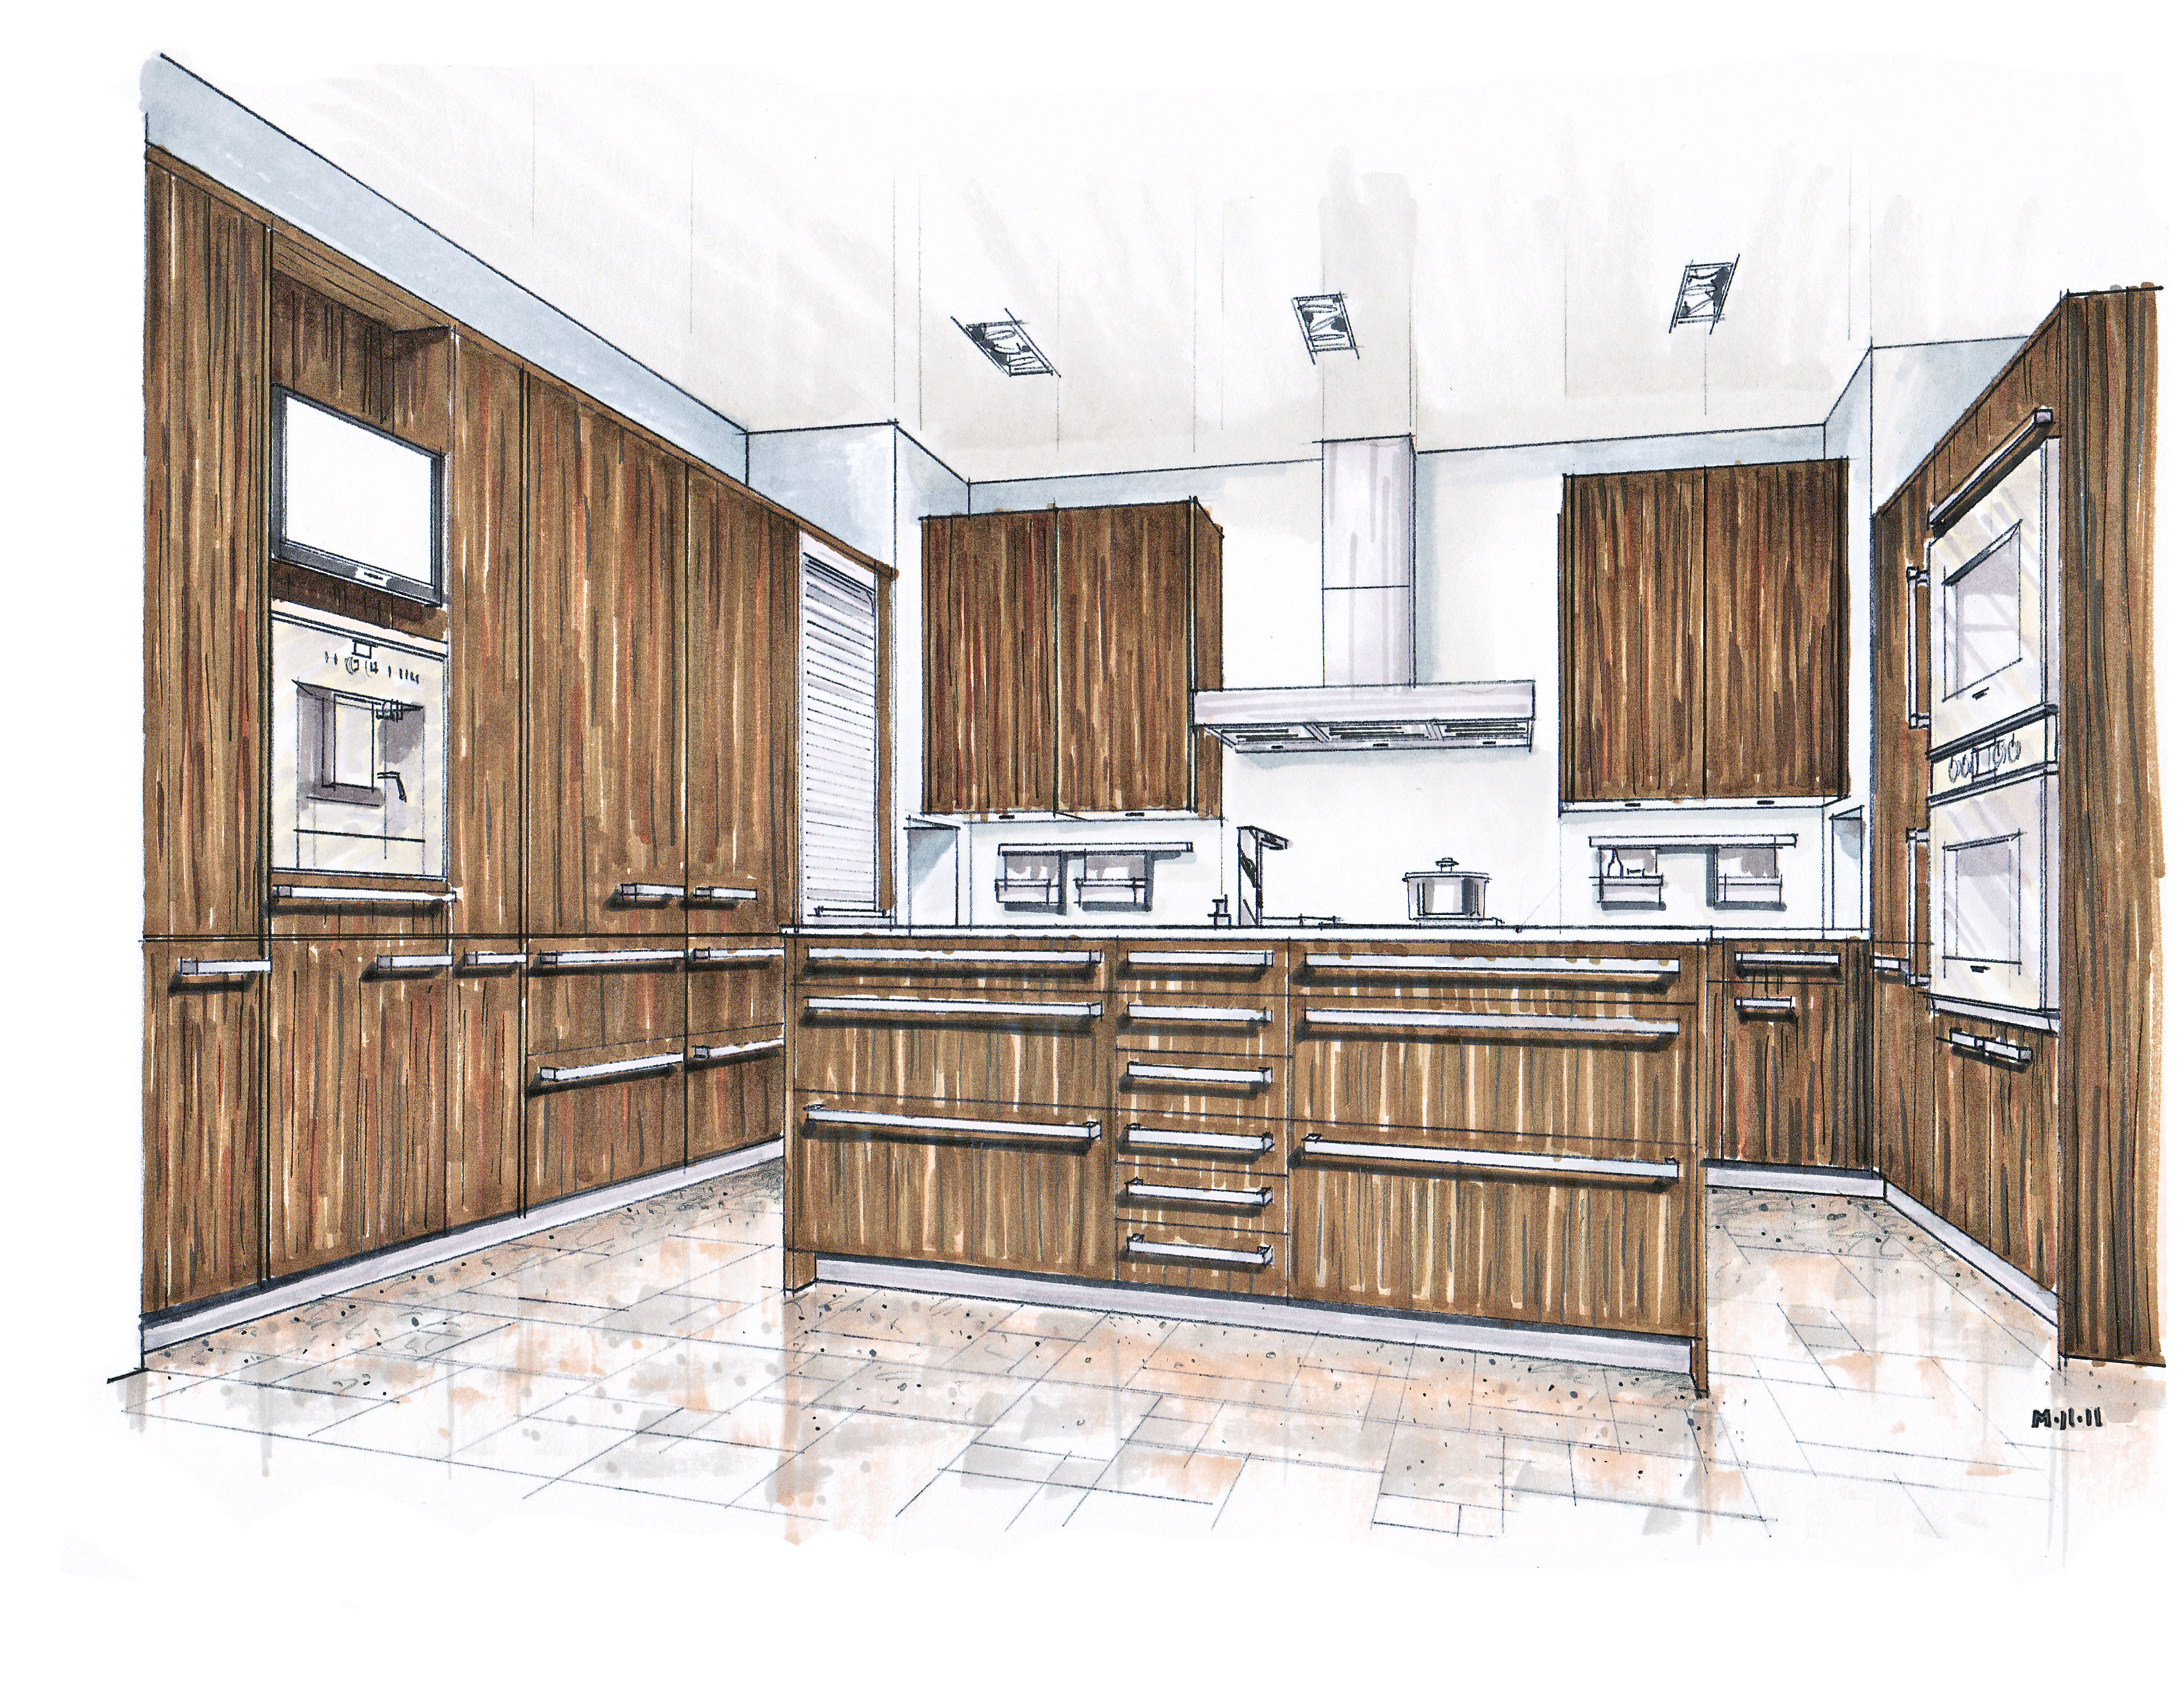 December 2011 mick ricereto interior product design for Kitchen set drawing